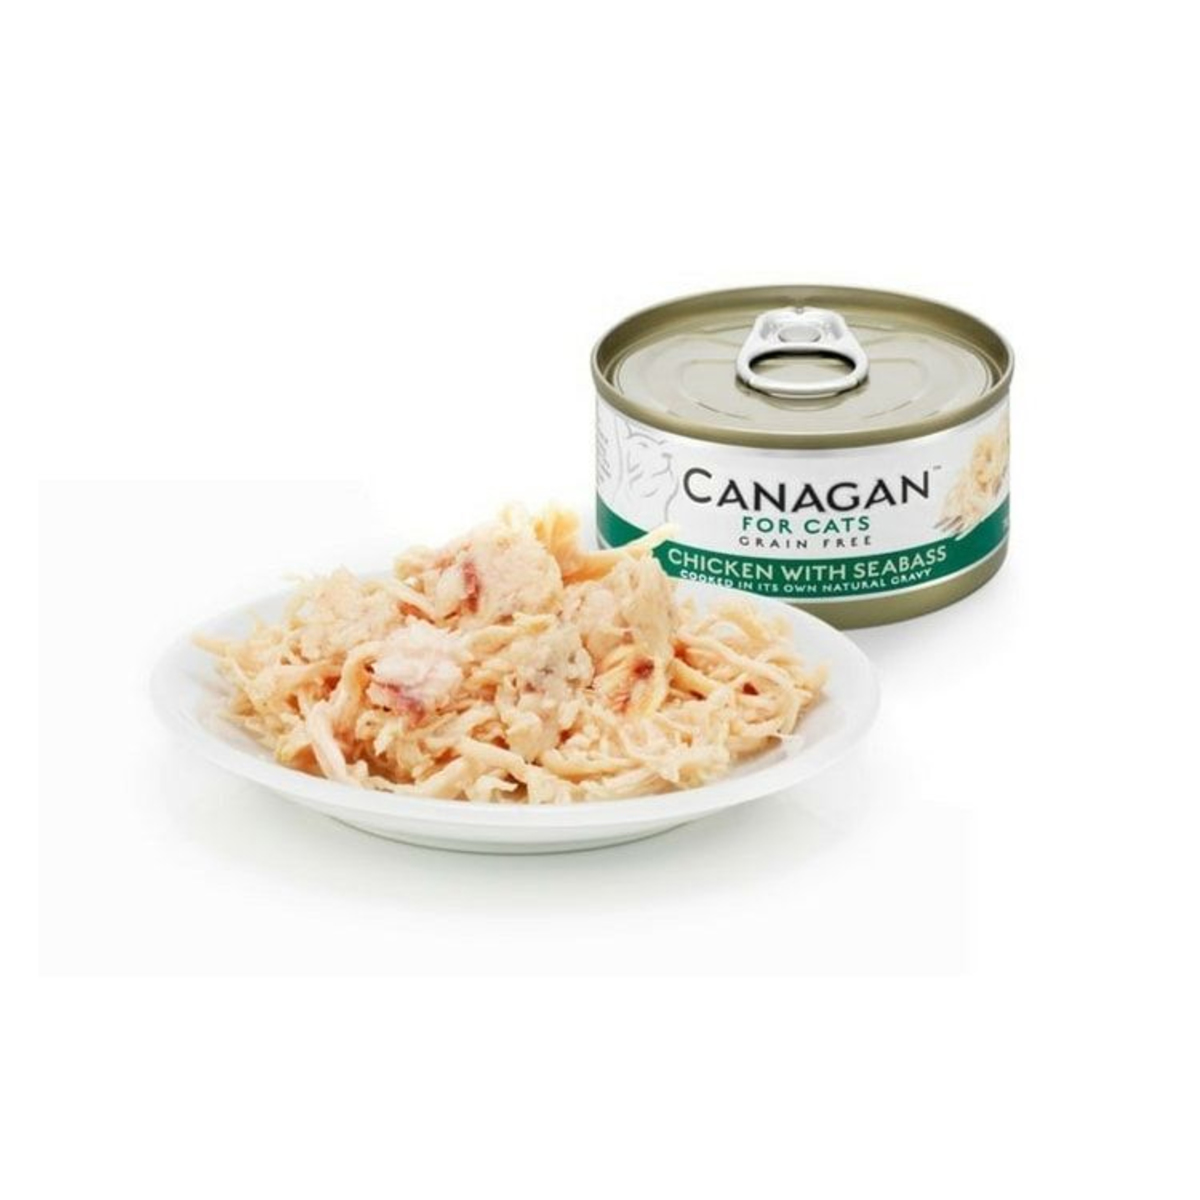 Non-grain chicken with canned bass The cat canned - 75g